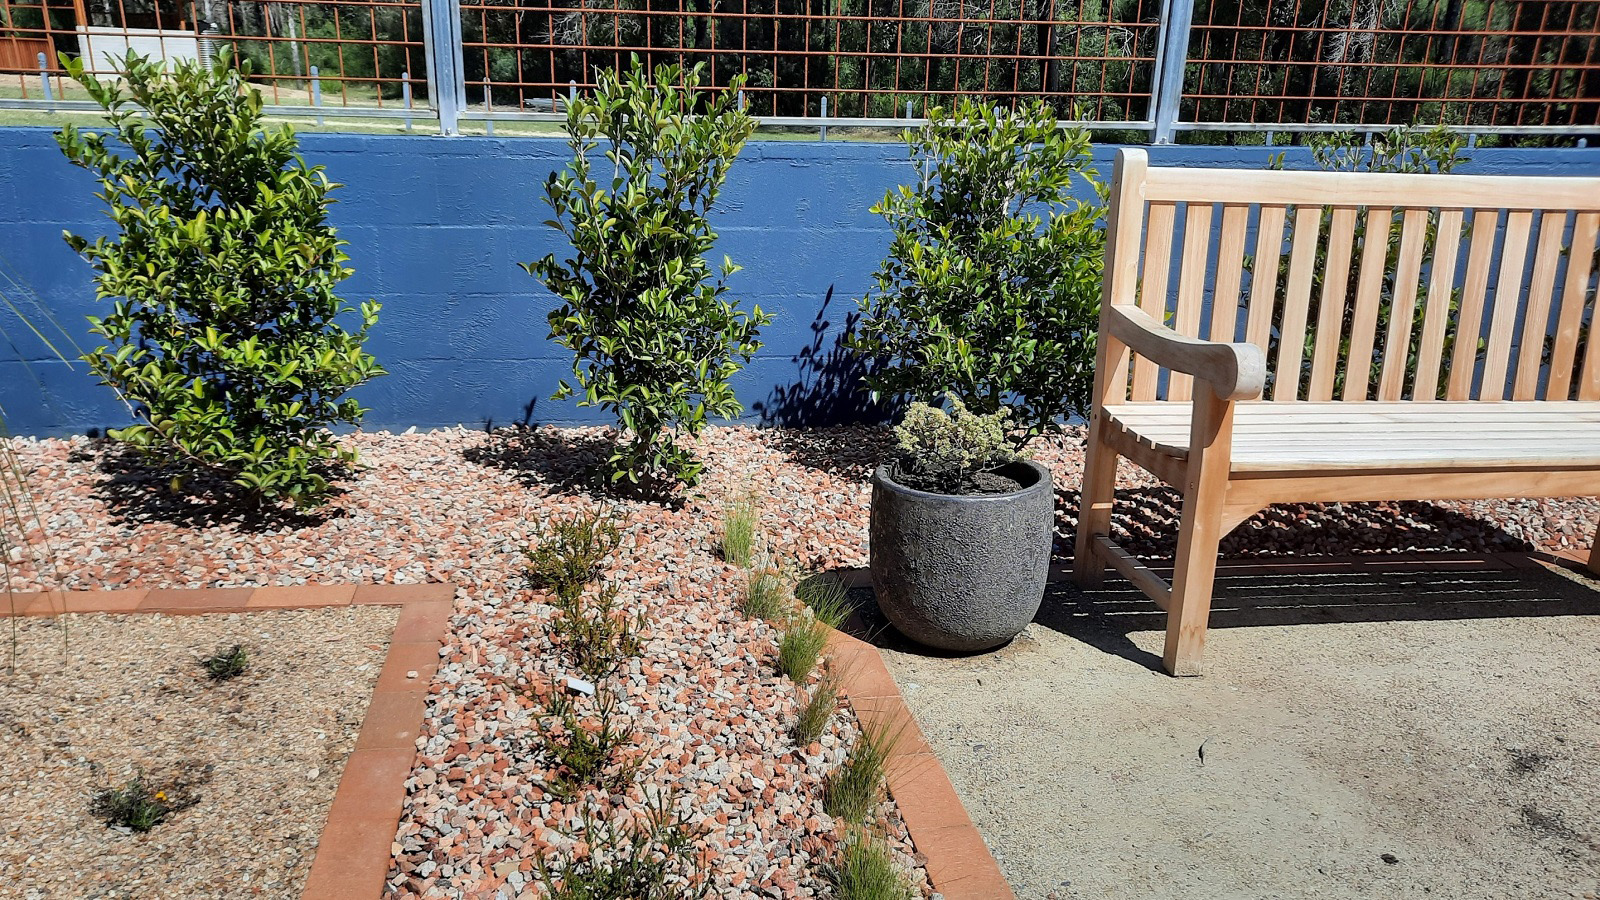 Plants next to an outdoor bench and paved area